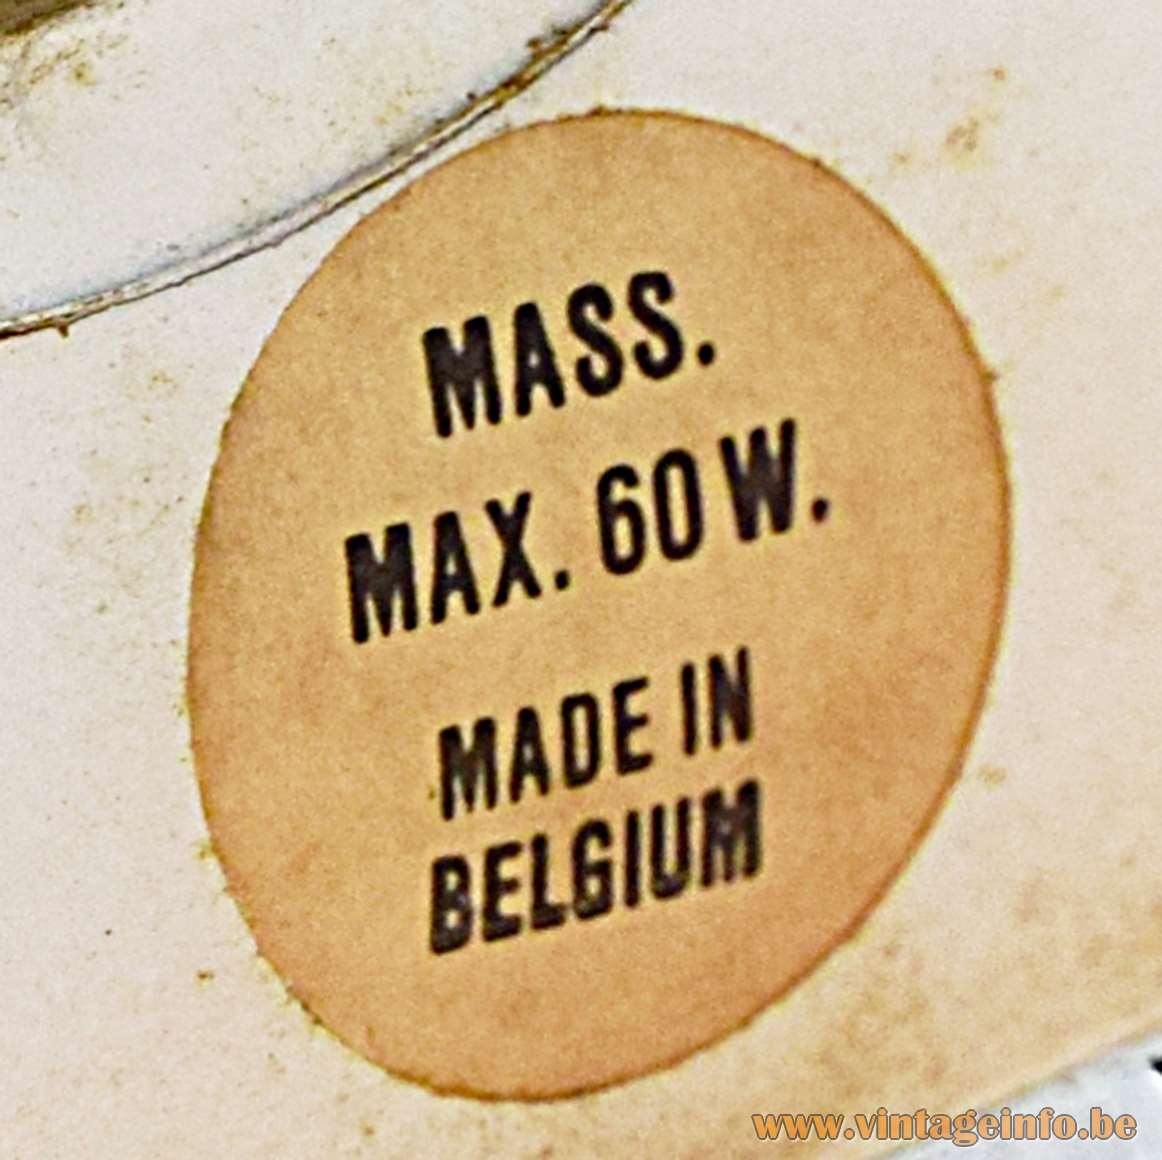 Massive - 1970s Label - Mass. MAx. 60 W - Made in Belgium